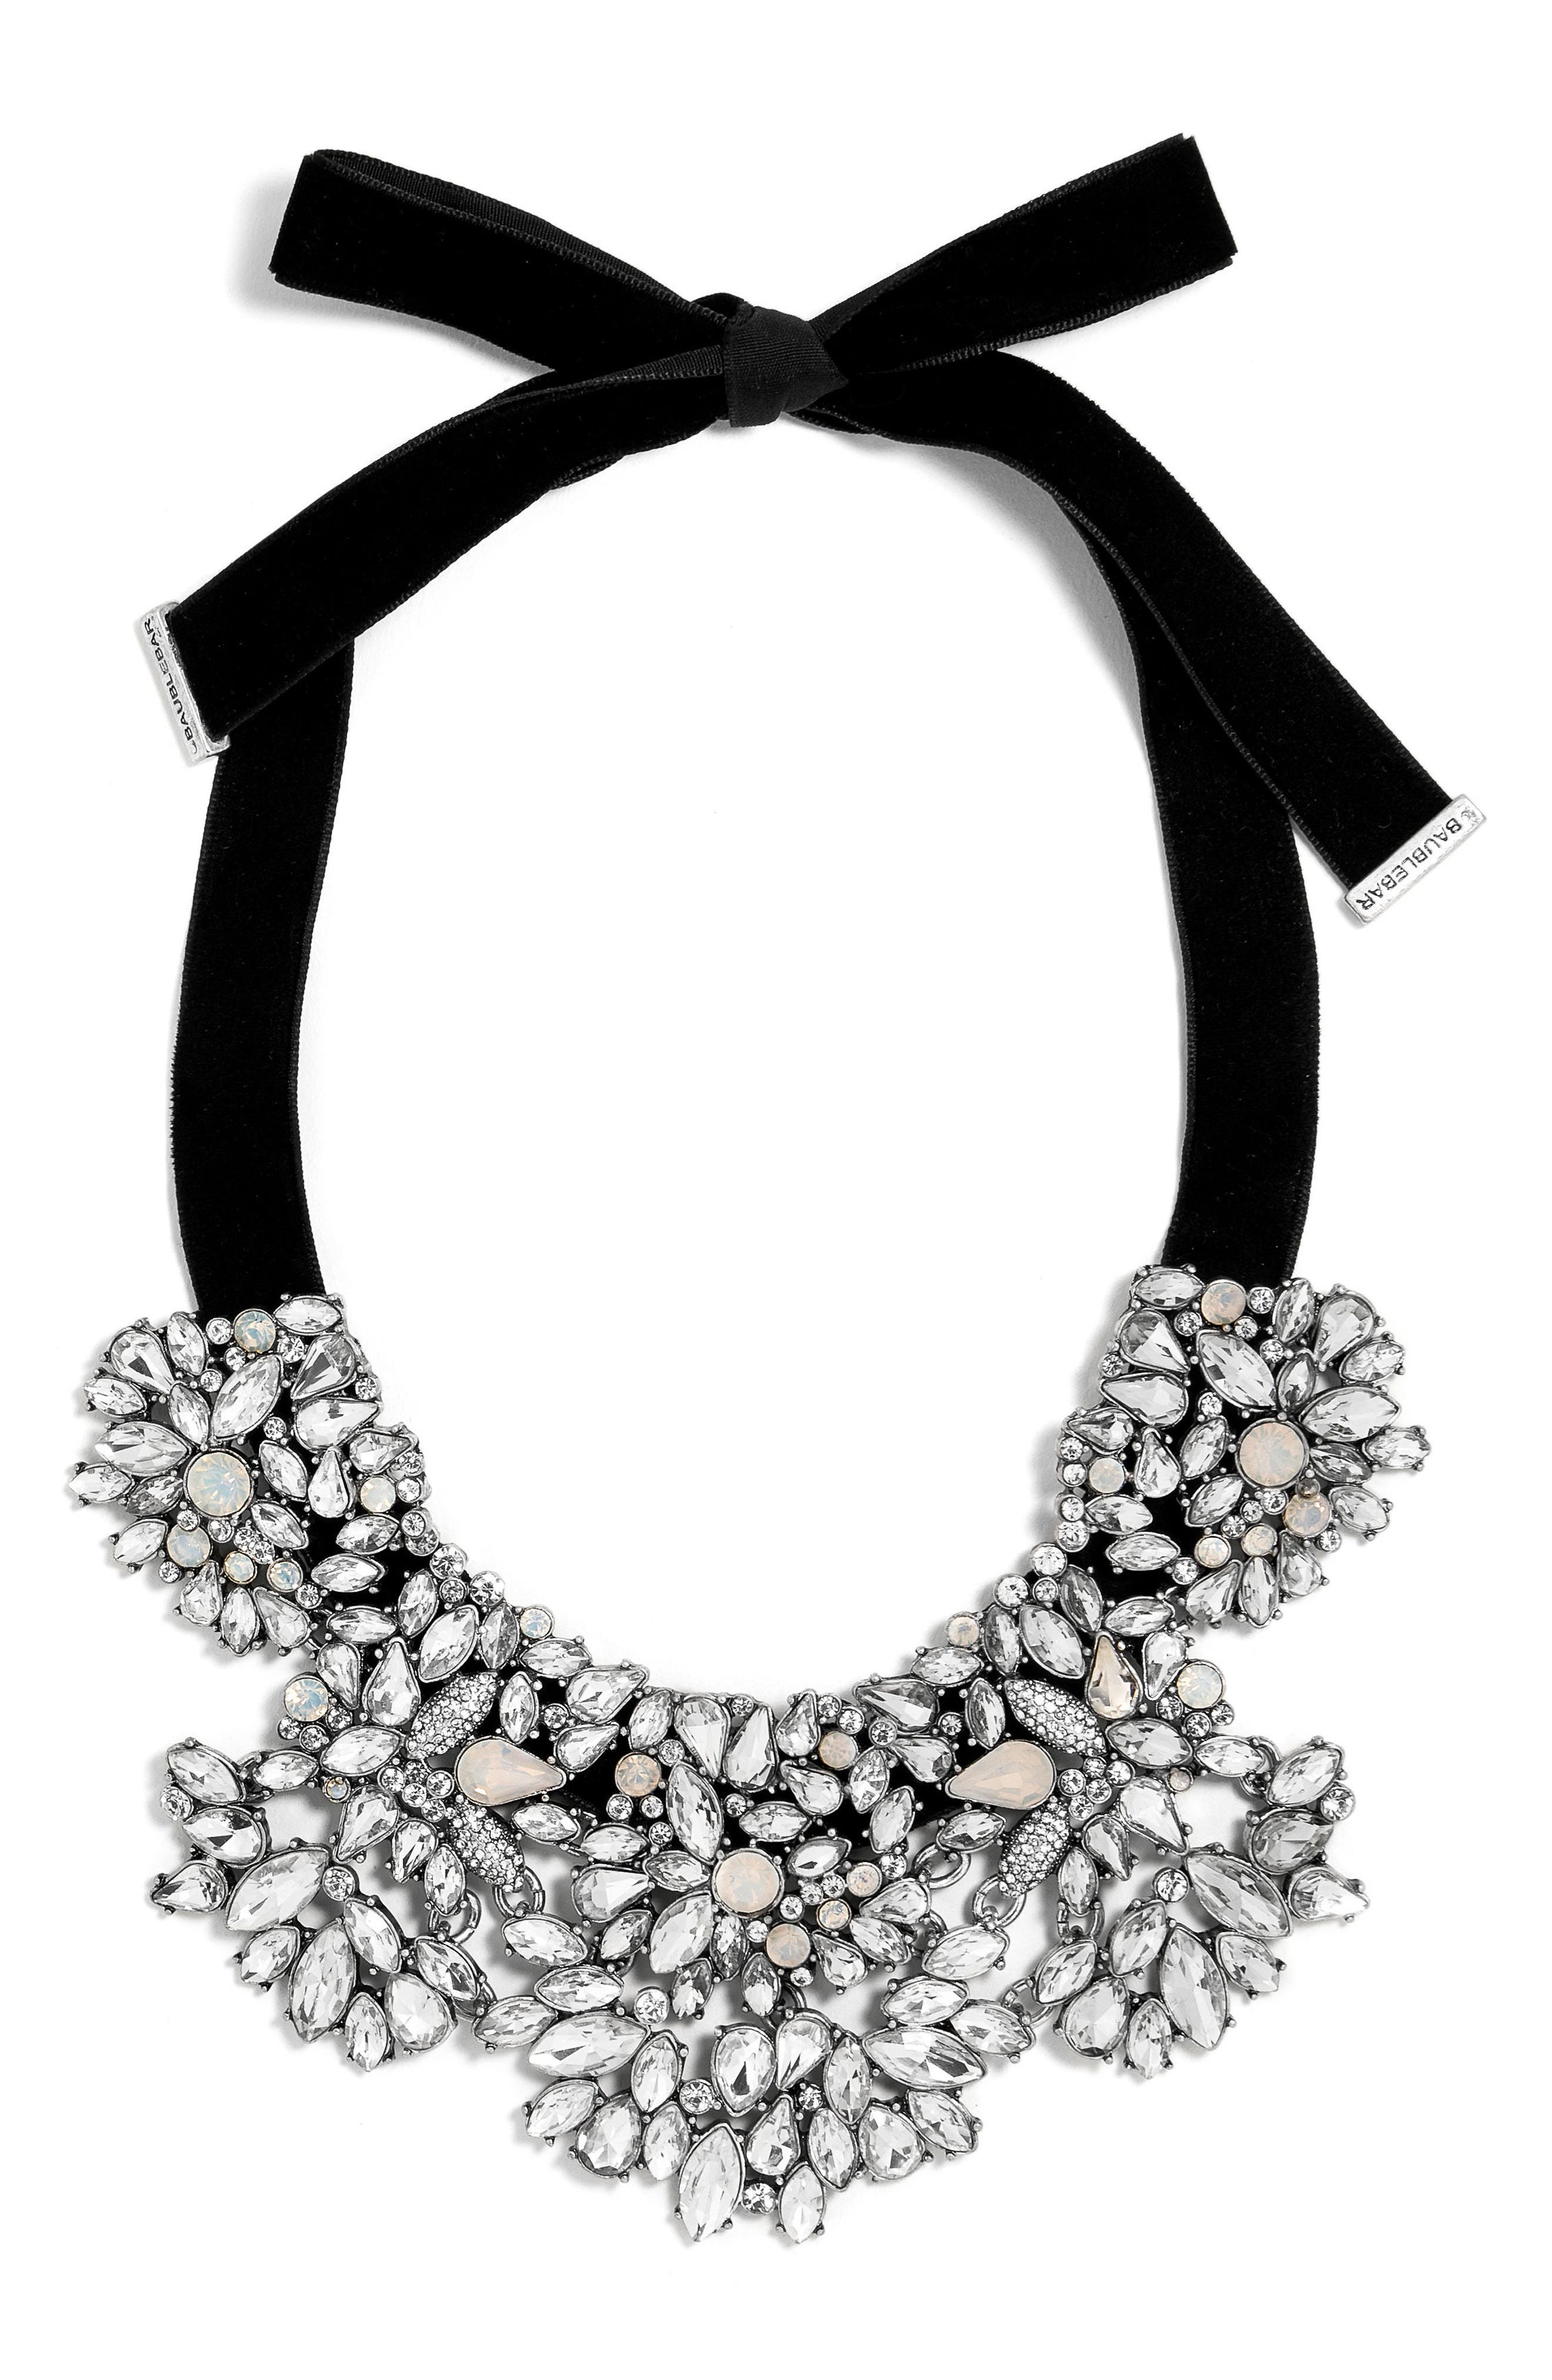 Crystal Shatter Statement Necklace,                             Main thumbnail 1, color,                             Black